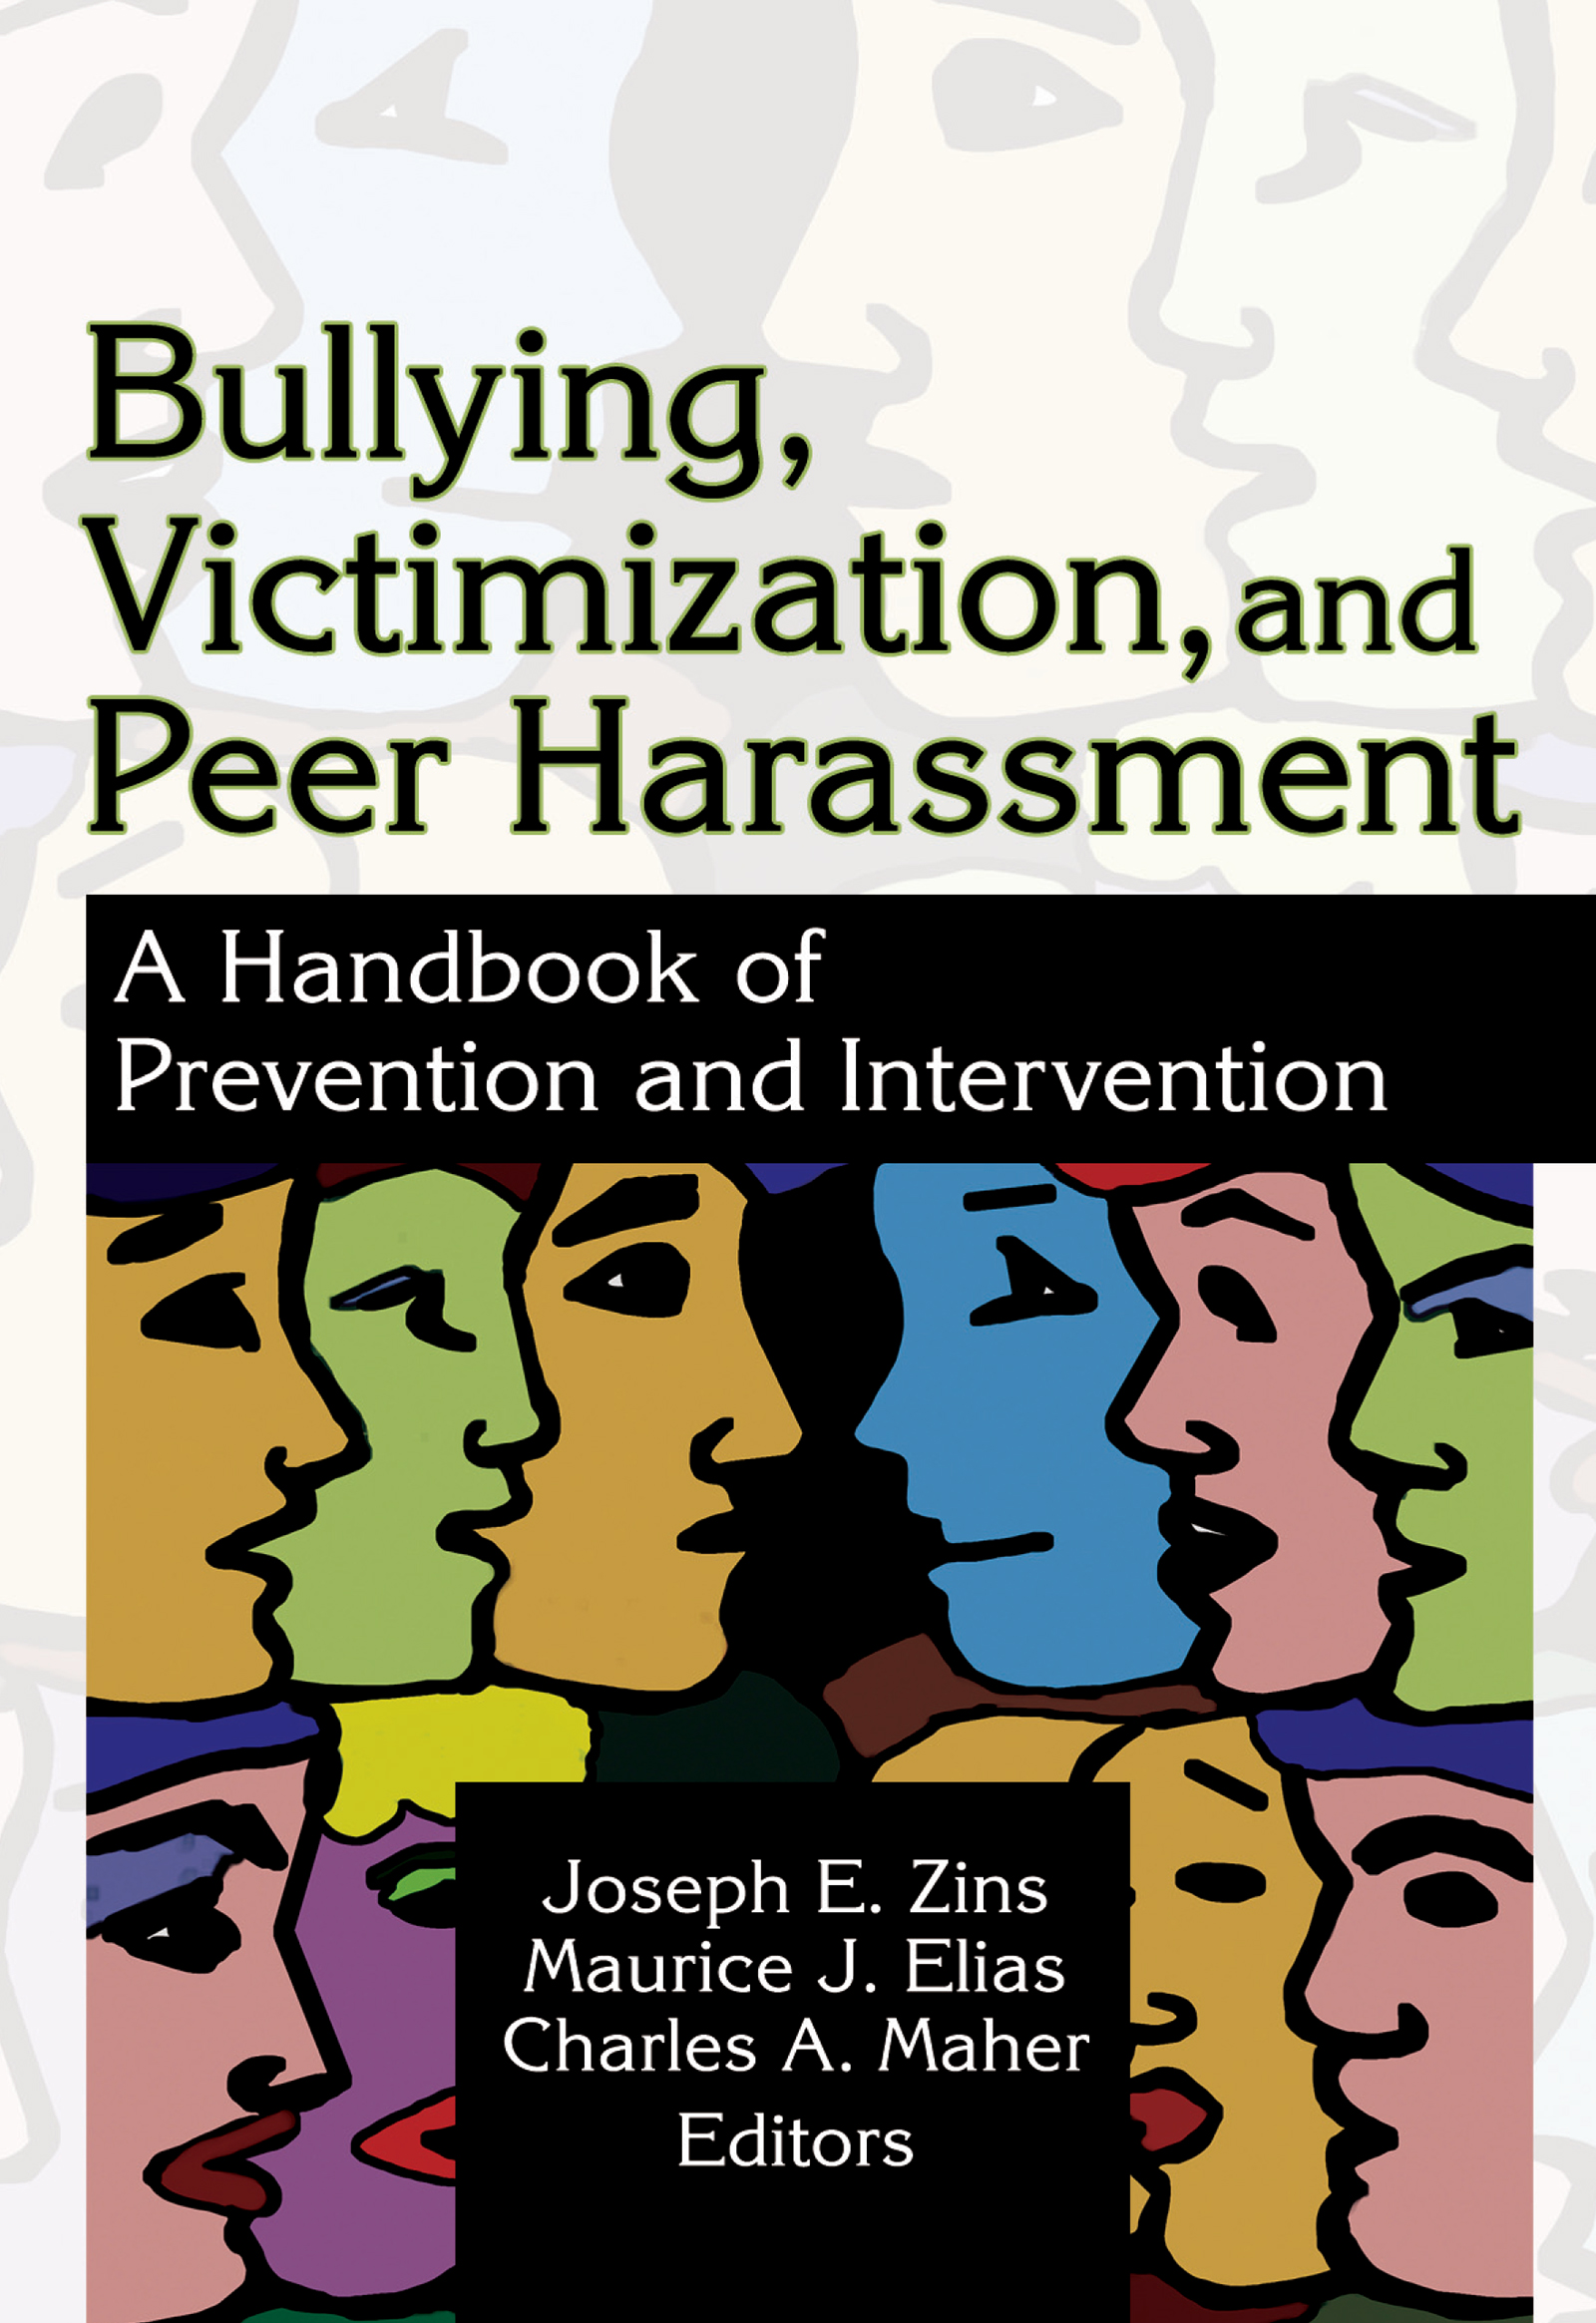 Bullying, Victimization, and Peer Harassment: A Handbook of Prevention and Intervention (Paperback) book cover